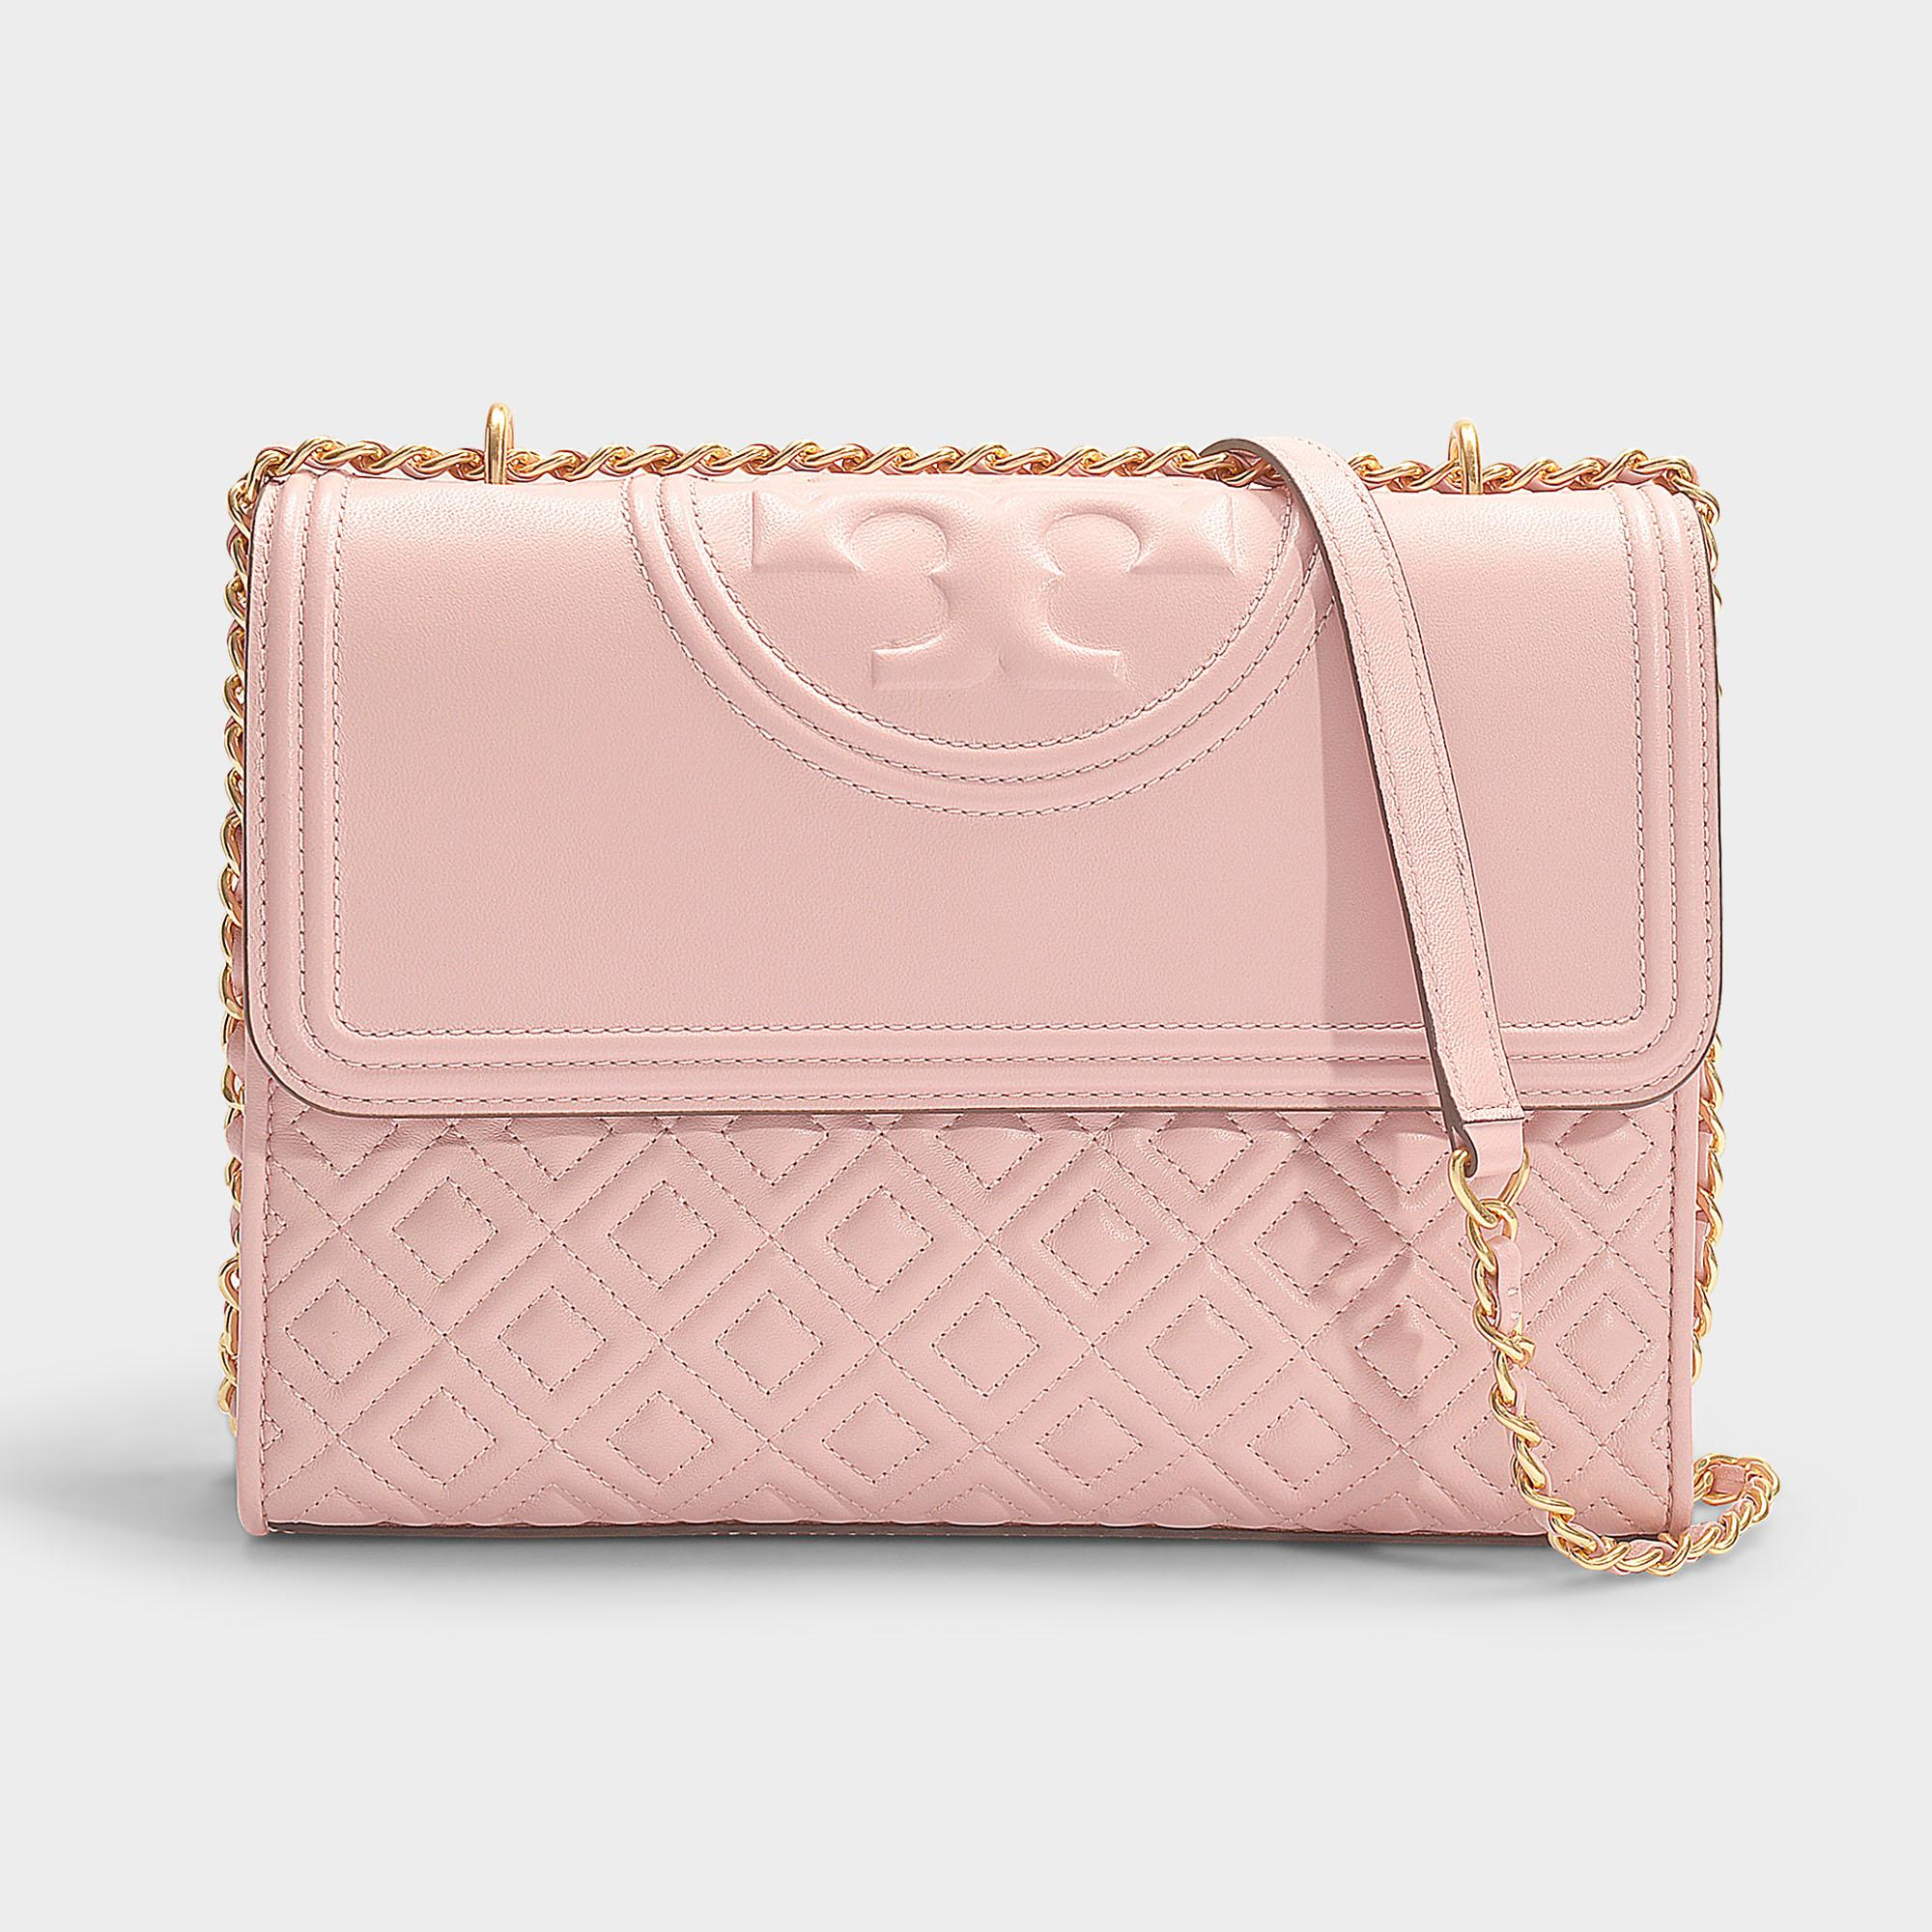 457094ab727f Tory Burch Fleming Convertible Shoulder Bag In Shell Pink Calfskin ...